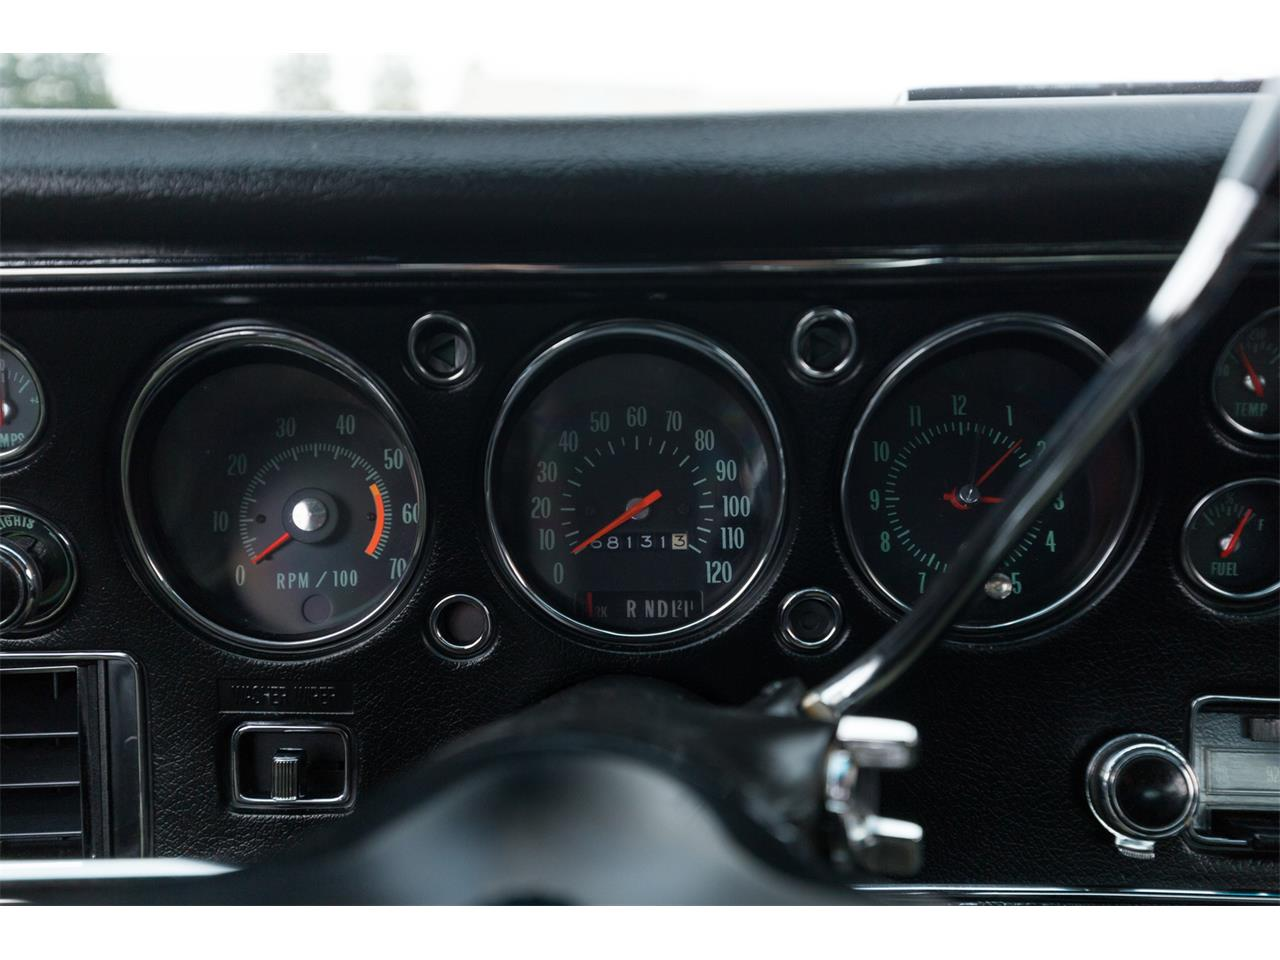 Large Picture of Classic 1970 Chevrolet Chevelle SS located in Fairfield California - $58,990.00 - MN2G